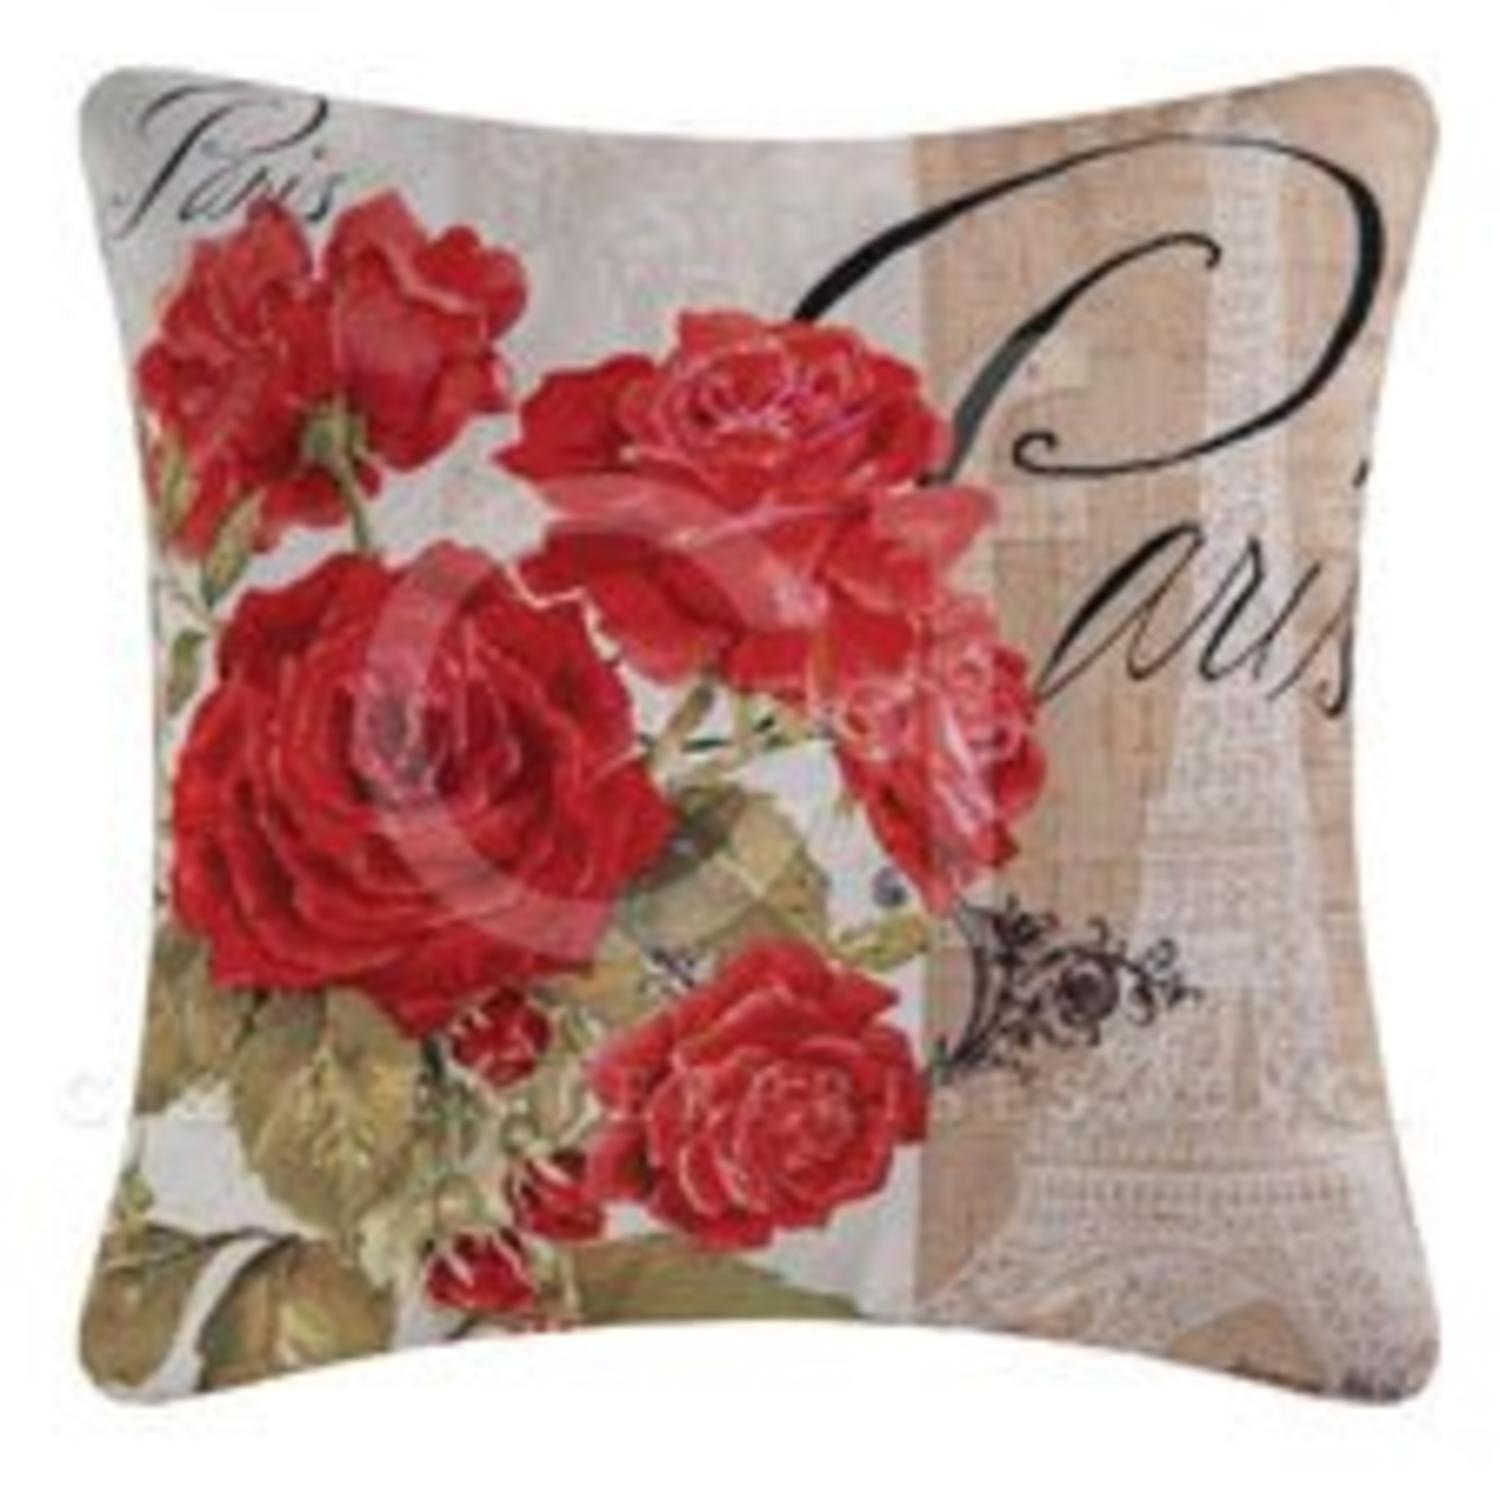 "18"" Decorative ""Paris"" and Red Roses Square Outdoor Throw Pillow - Polyester Down Filler"